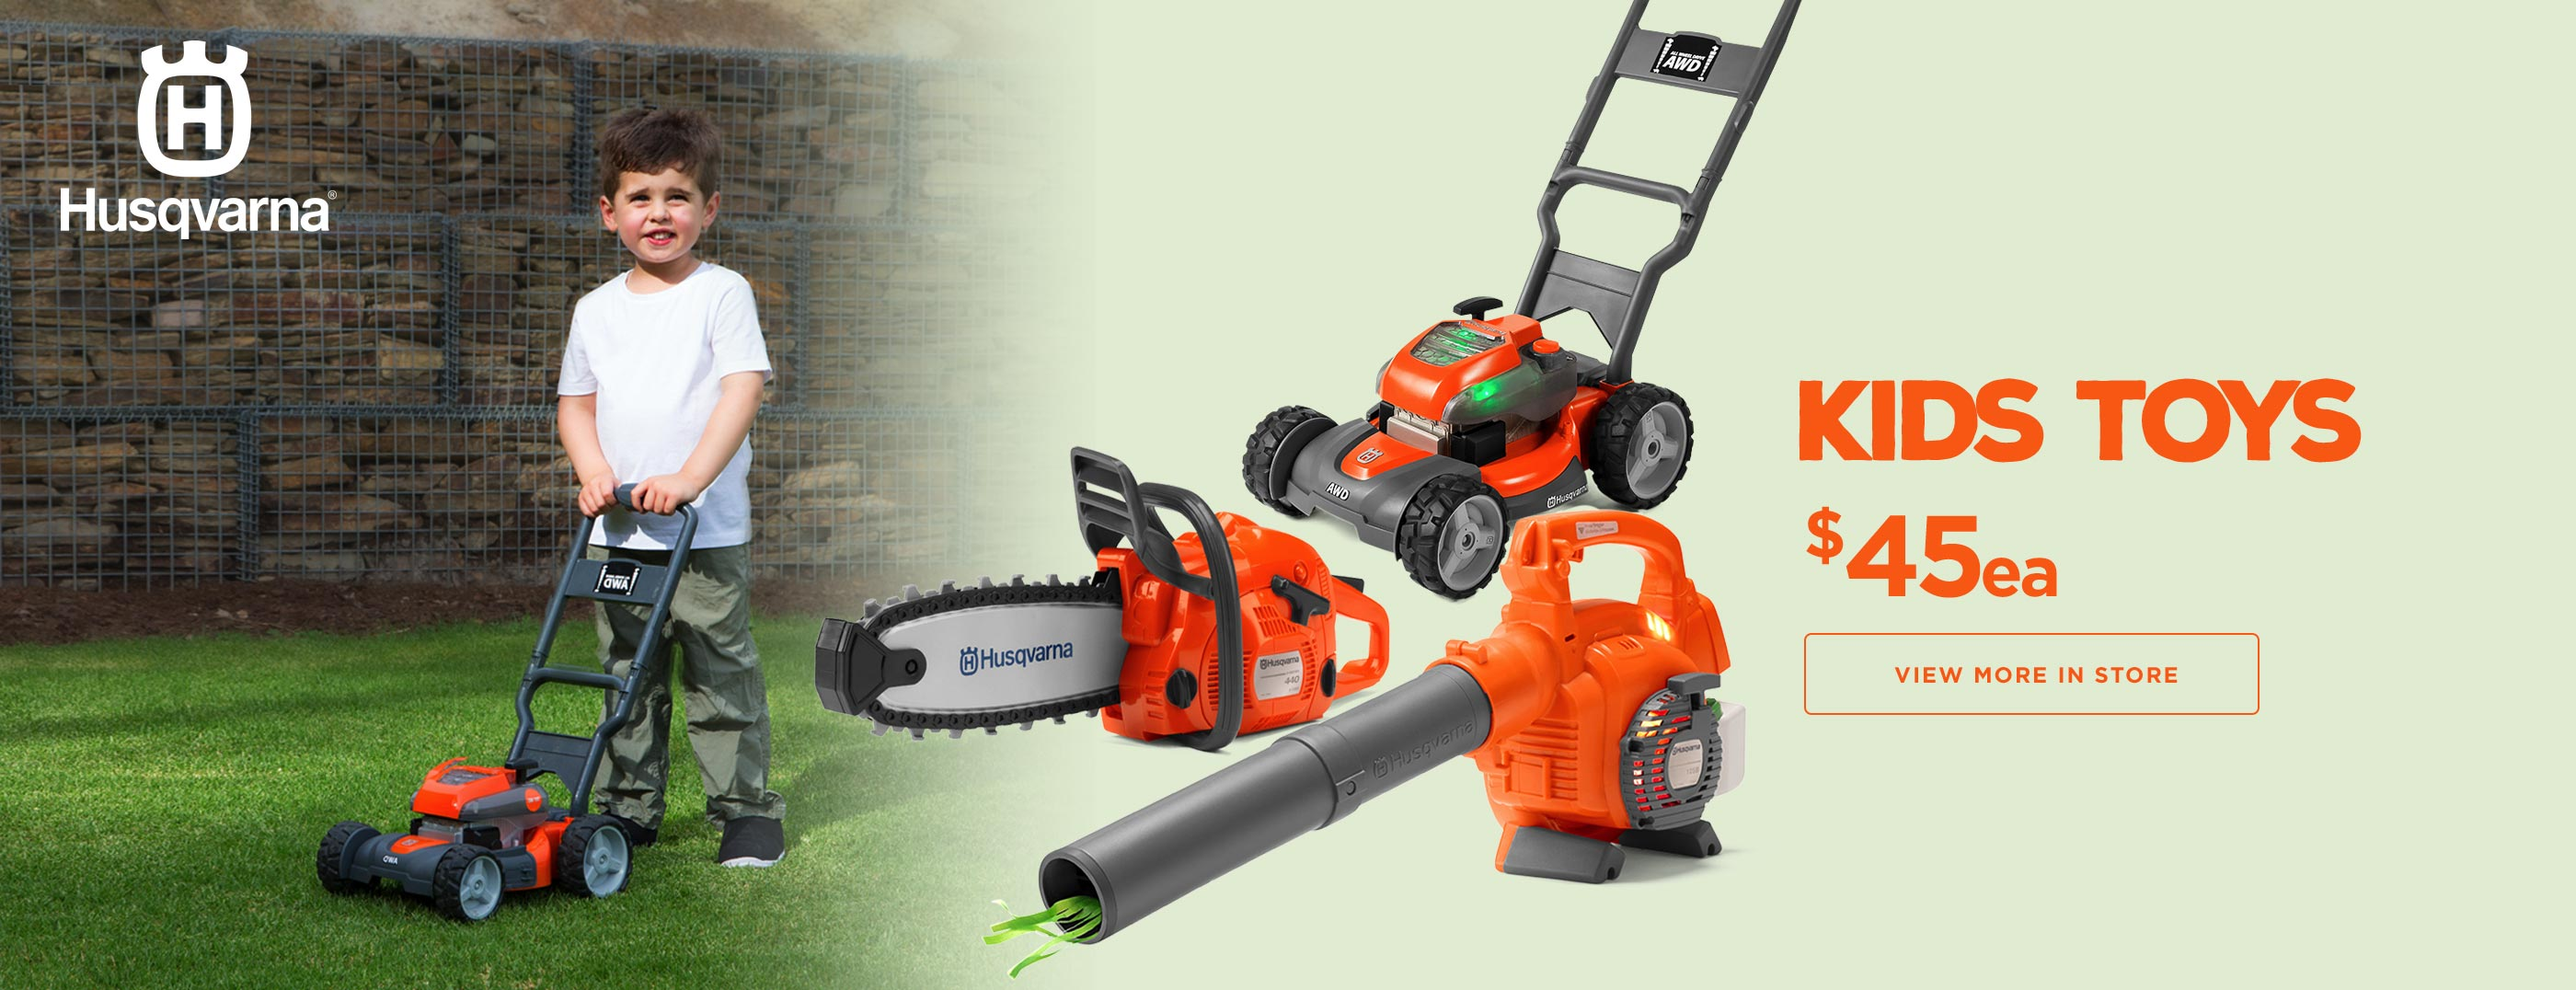 Husqvarna Kids Toys only $45 each!